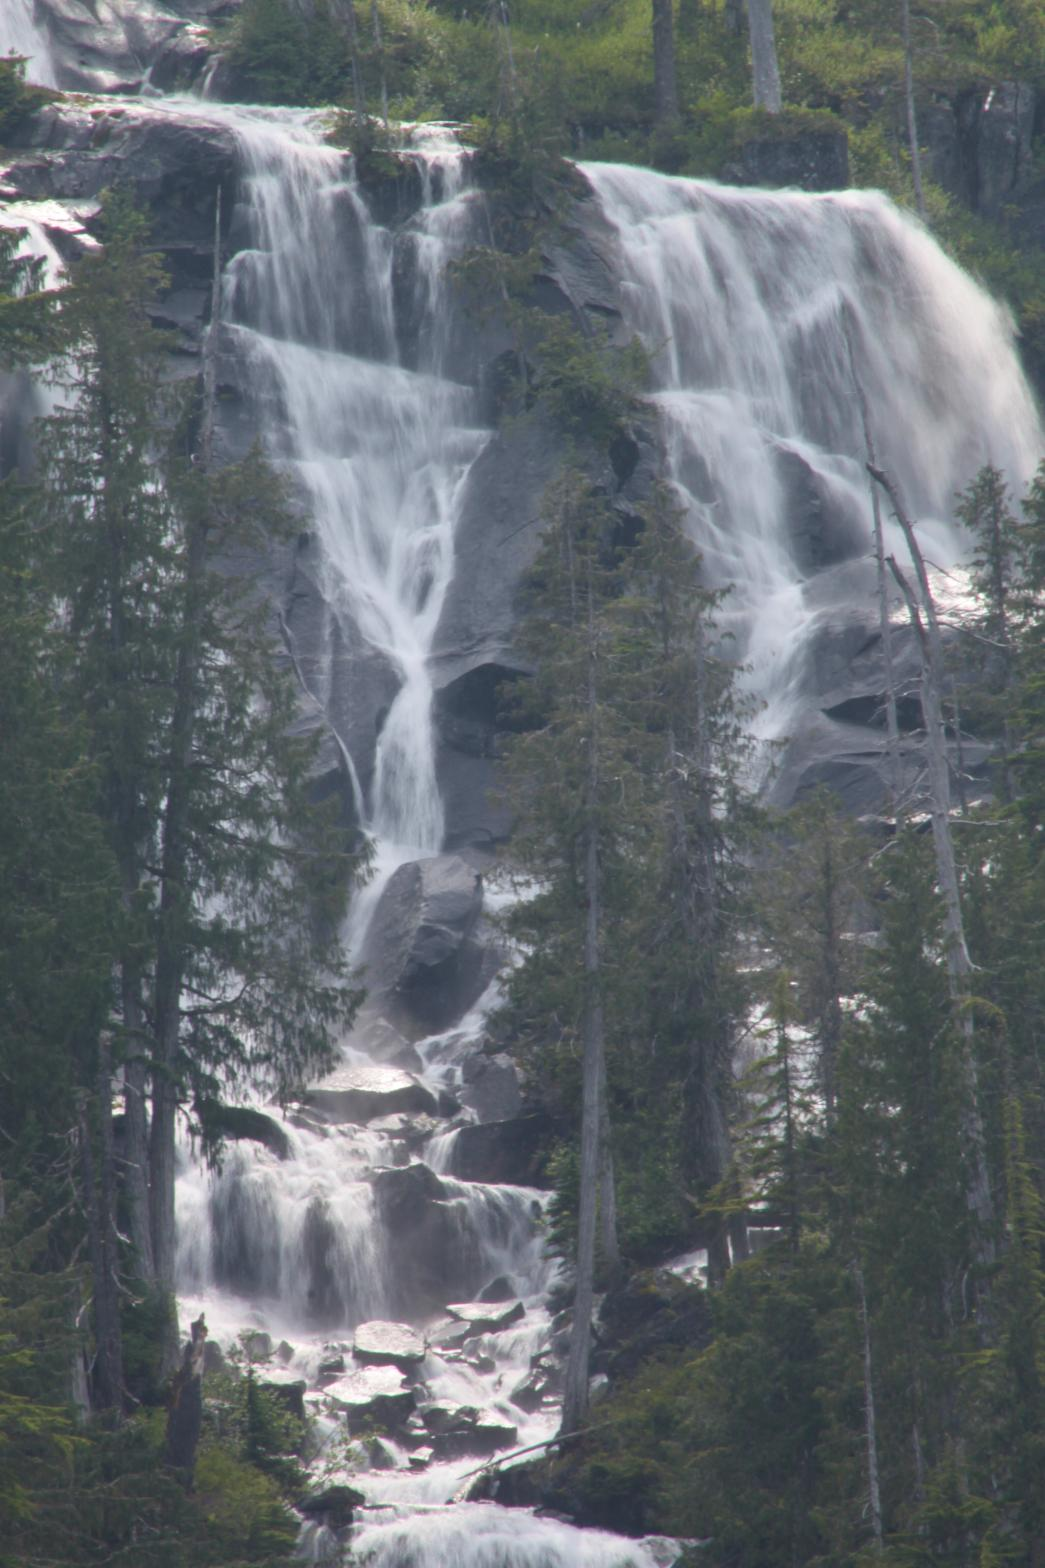 Close up of part of Big Heart Falls